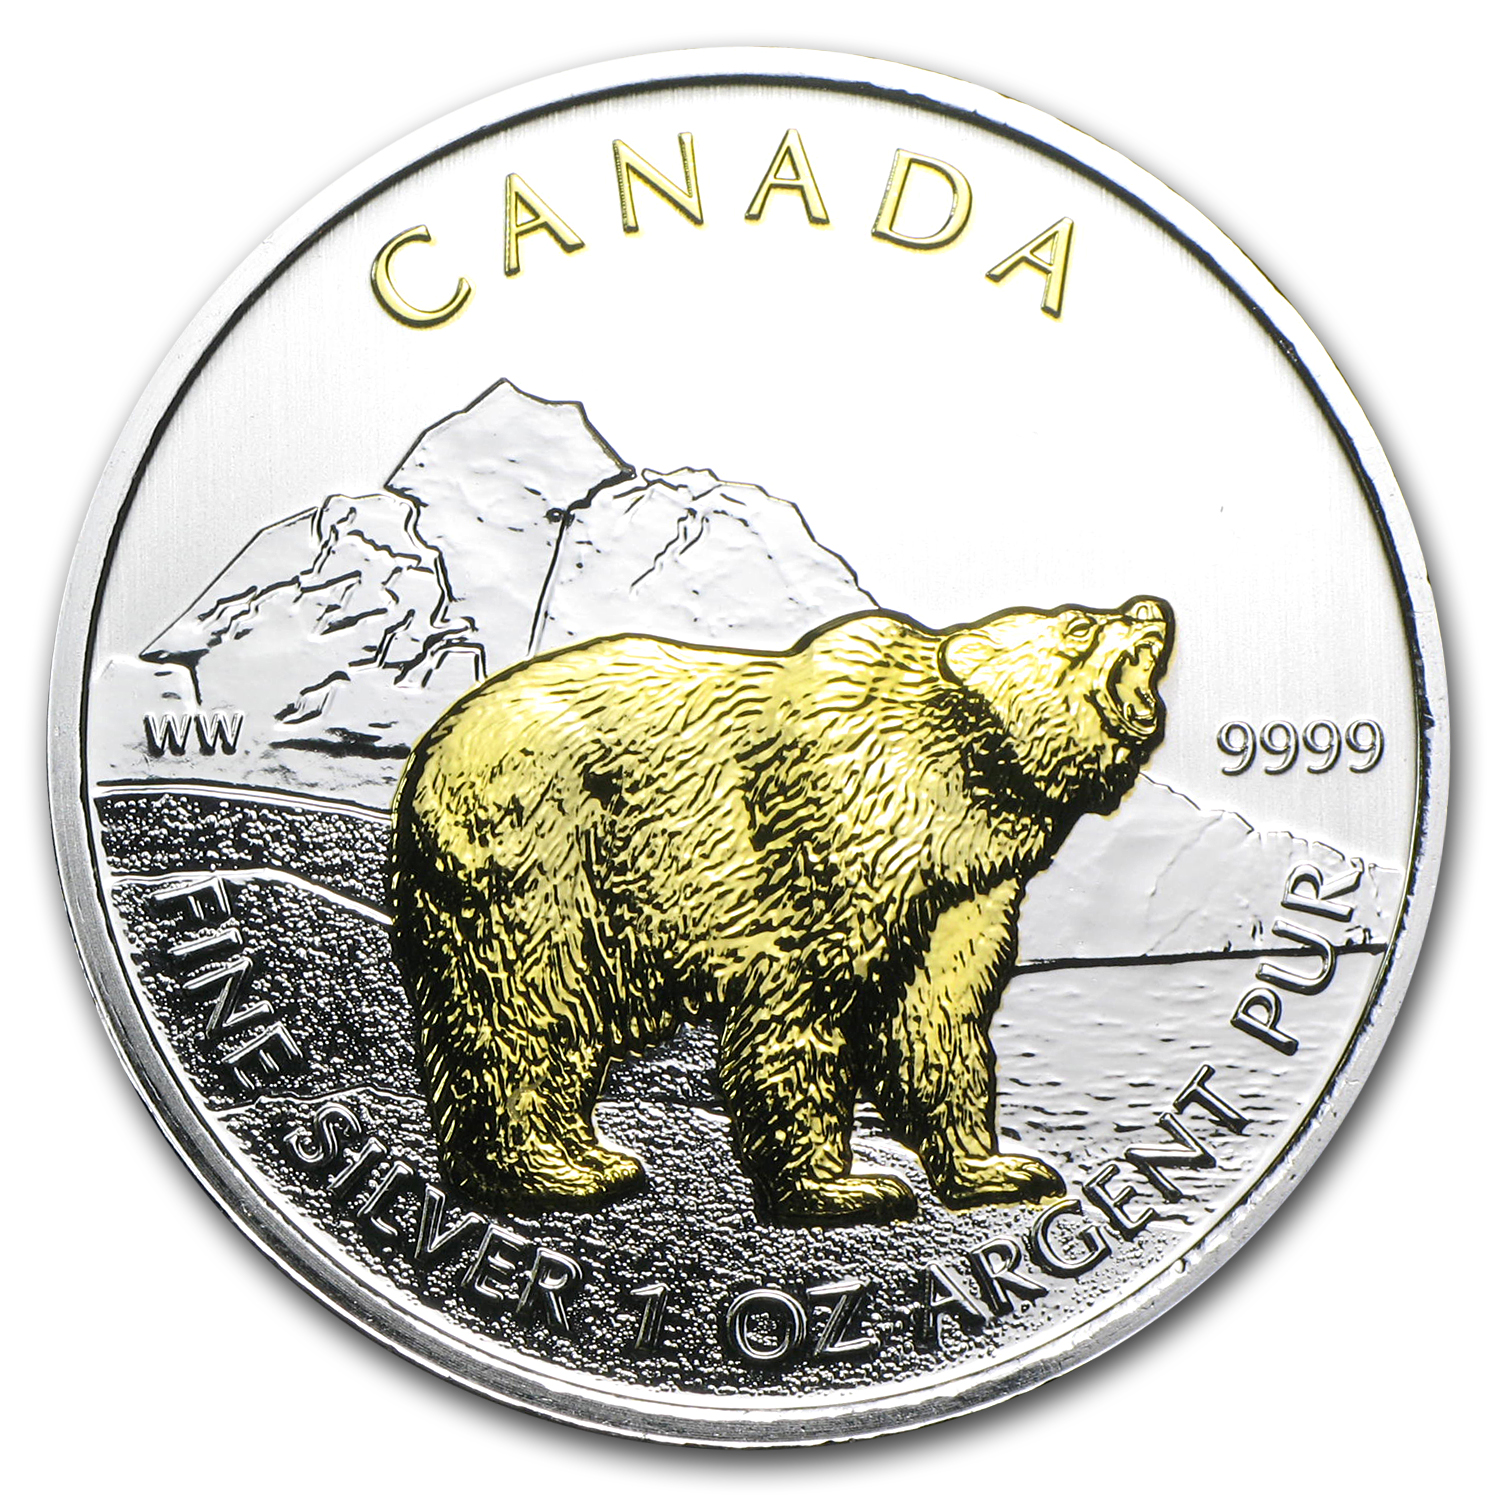 2011 Canada 1 oz Silver Wildlife Series Grizzly (Gilded)